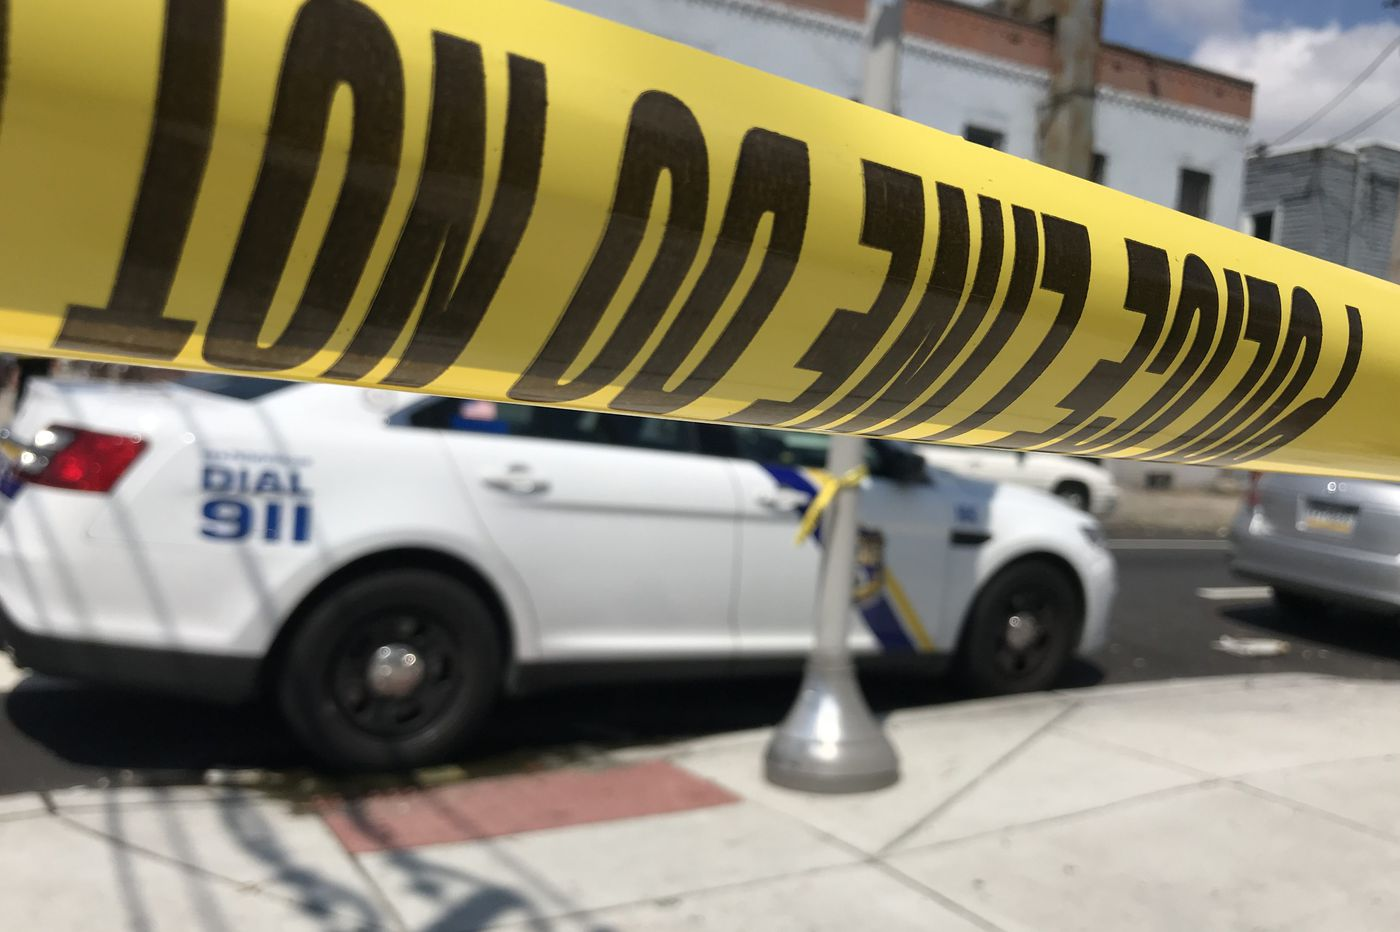 Would-be armed robber shot, killed in West Philly by intended victim